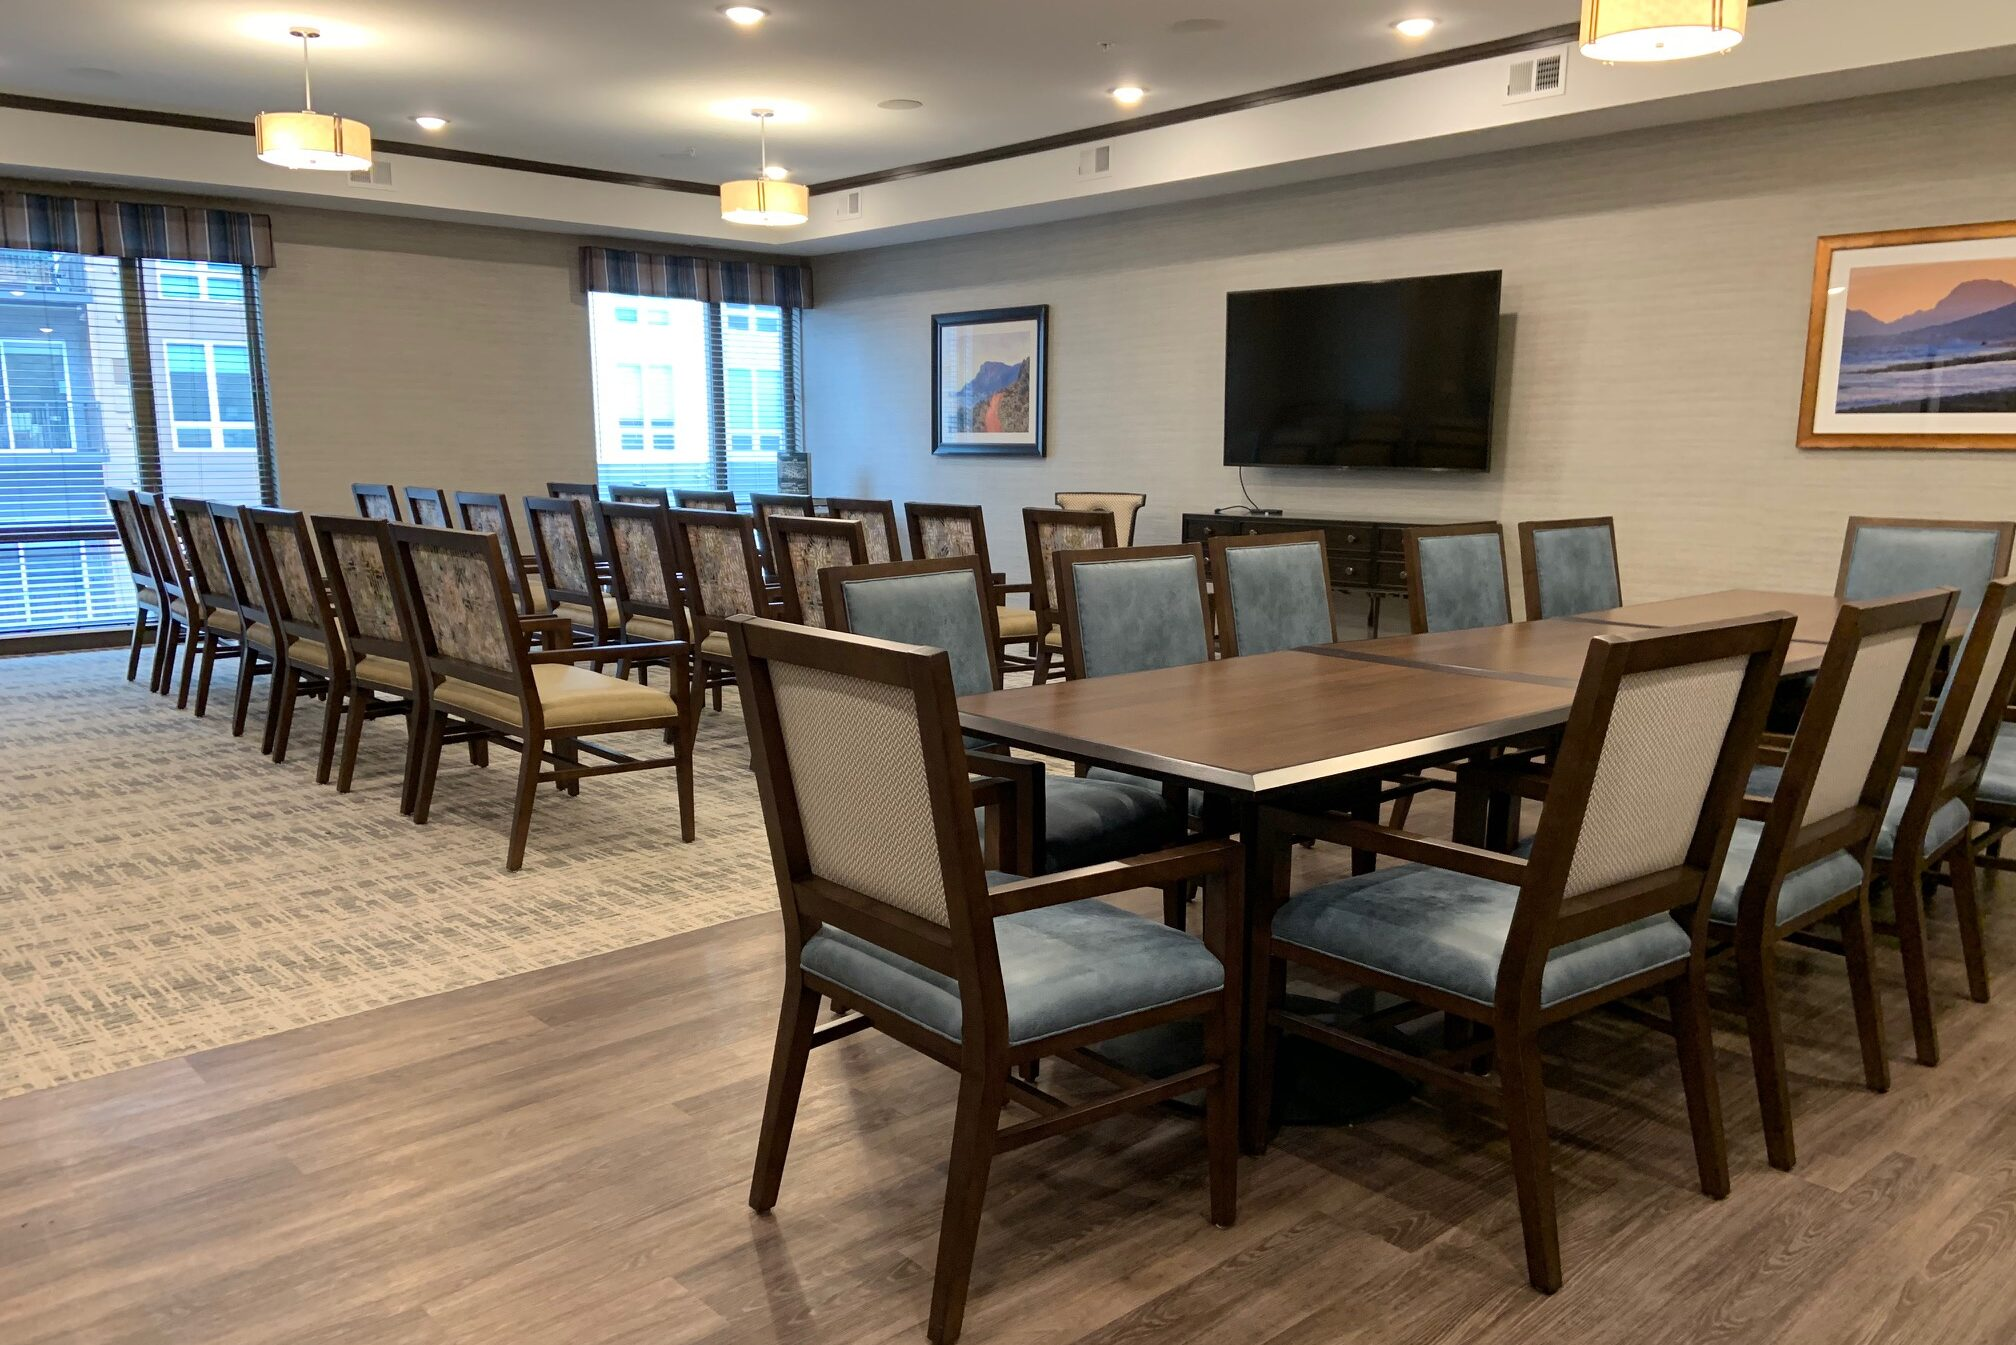 Assisted living community room with tables, chairs and TV empty